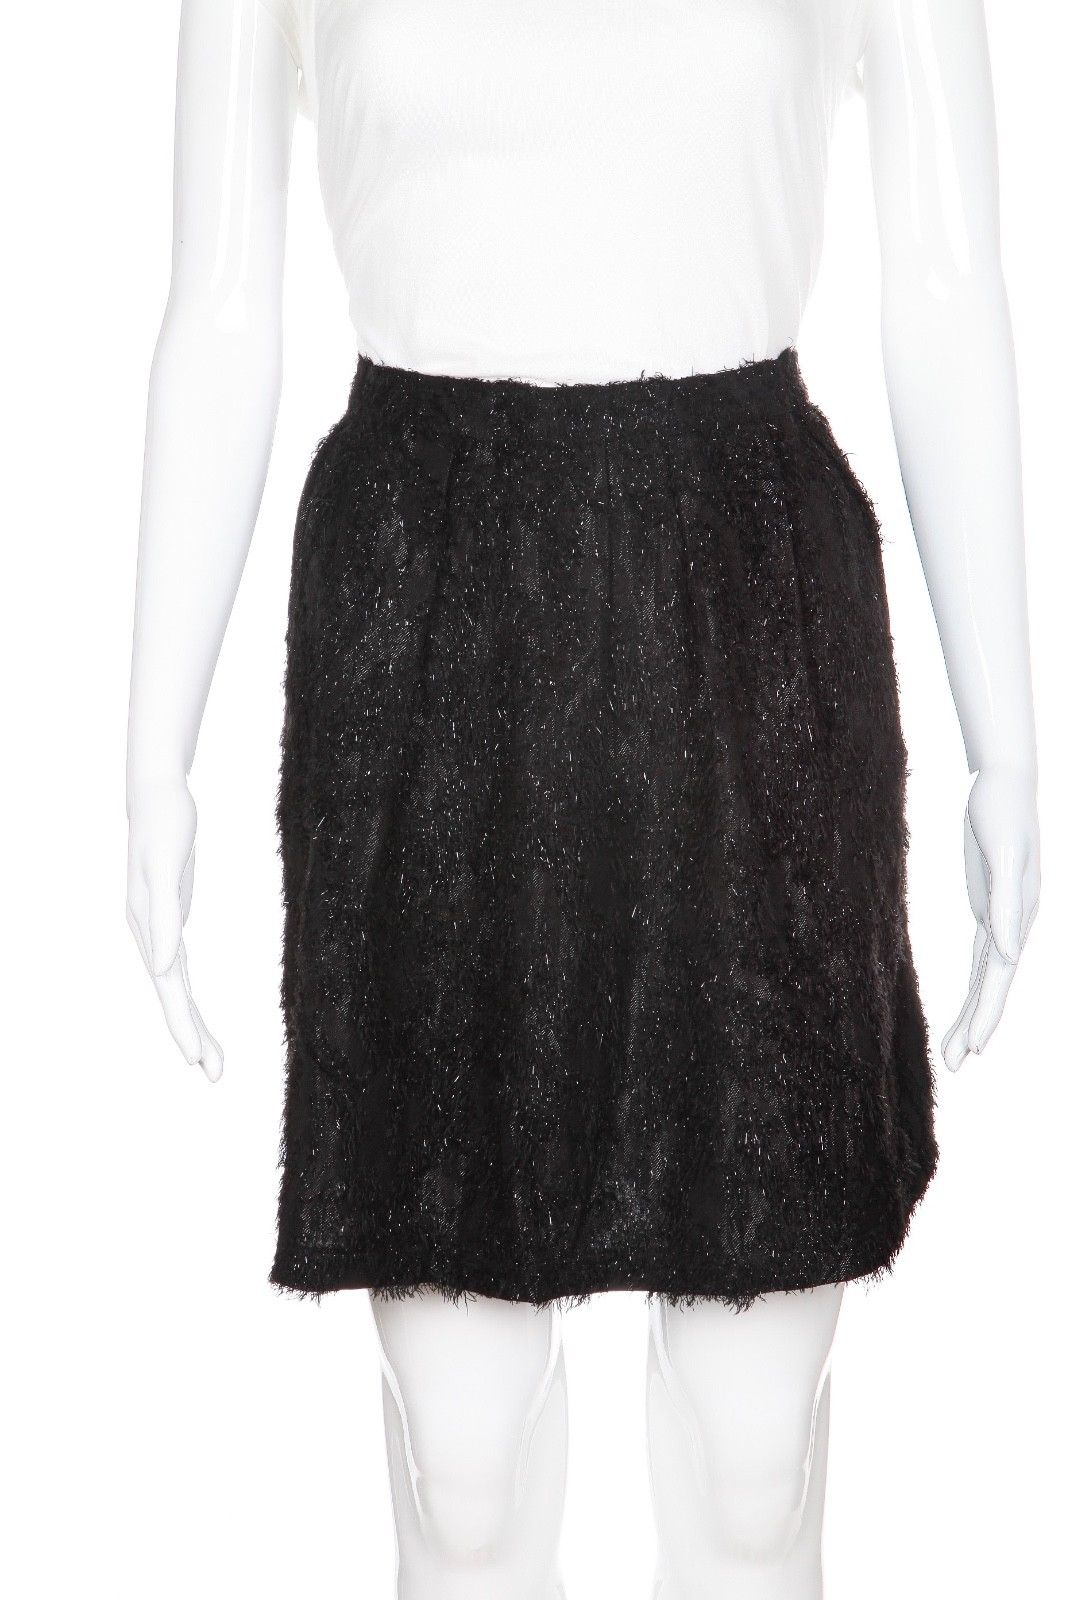 TOPSHOP Black Metallic Skater Flared Skirt Size 10